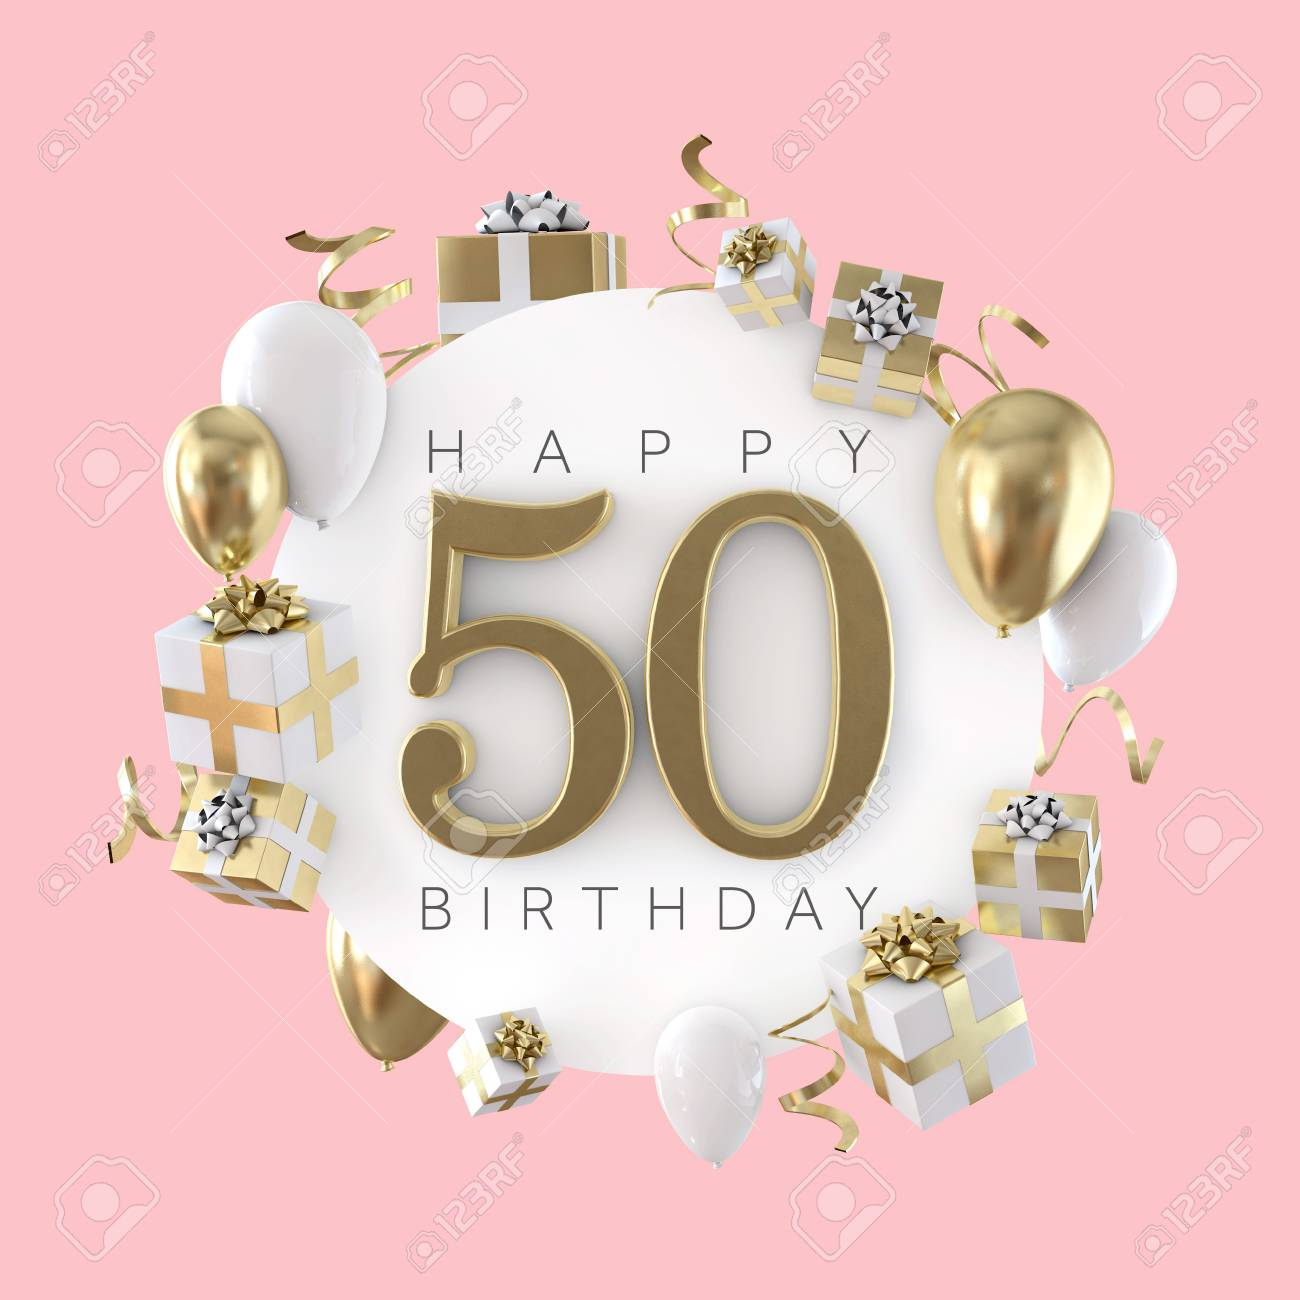 Happy 50th Birthday Party Composition With Balloons And Presents Stock Photo Picture And Royalty Free Image Image 119694719